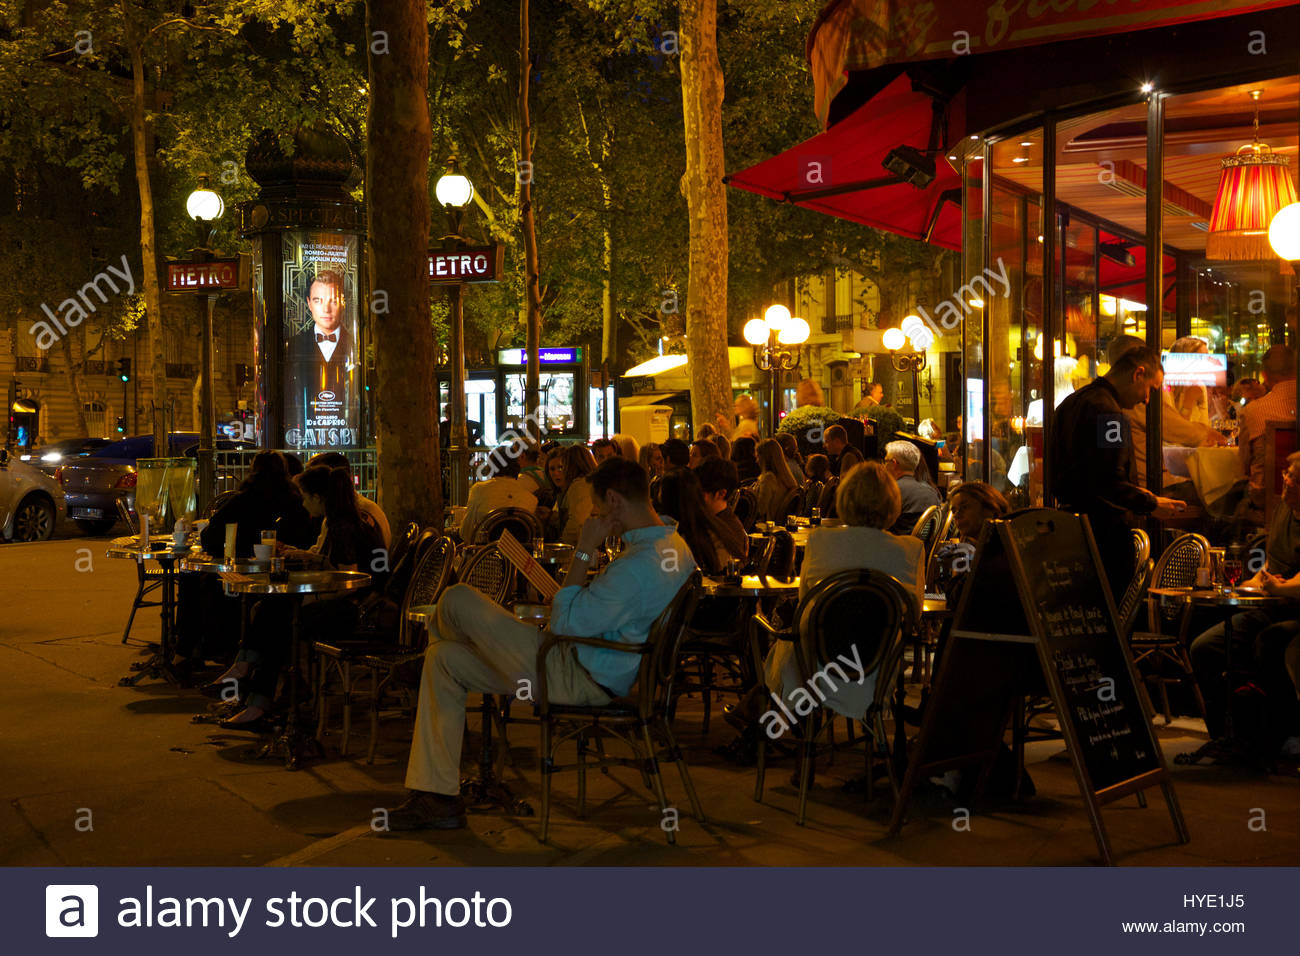 Tourist and locals enjoy spring weather at an outdoor cafe in Paris' 8th Arrondissement. - Stock Image